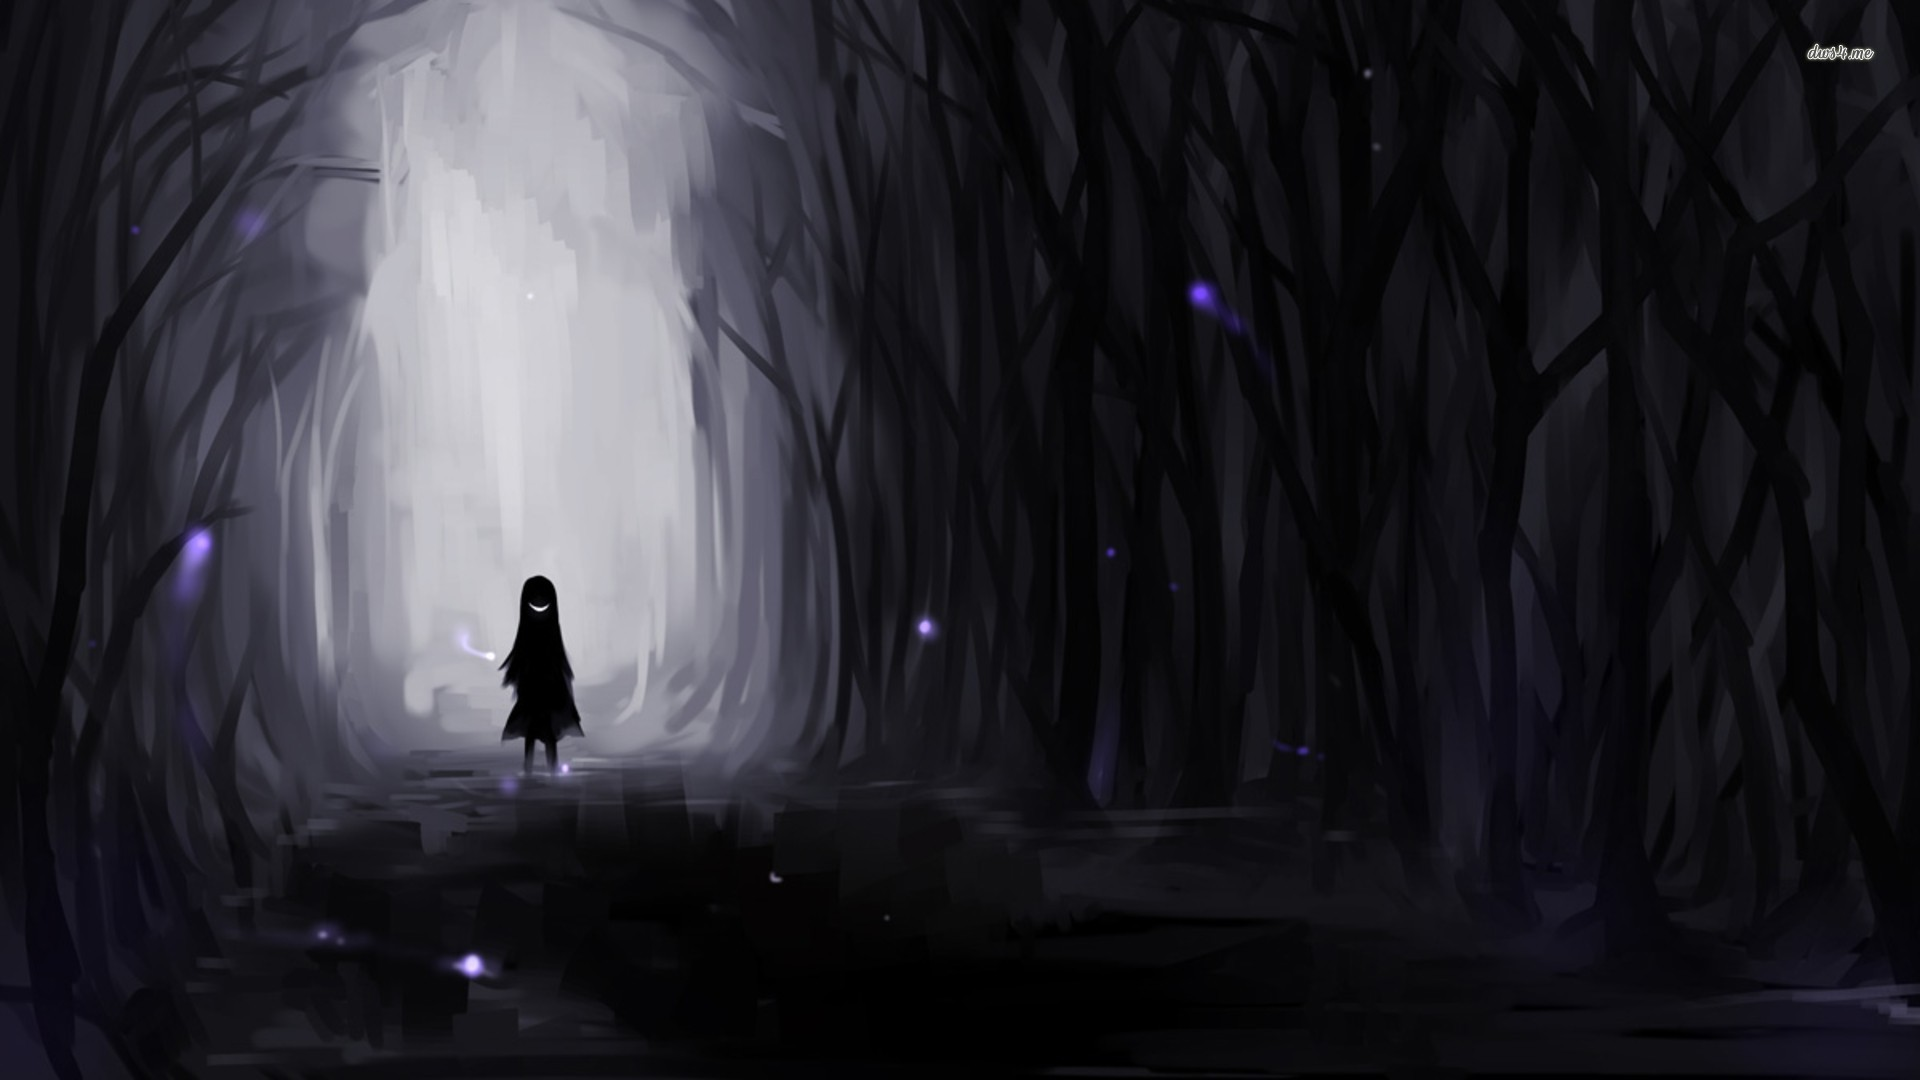 Lost Girl In Dark Forest clipart #9, Download drawings